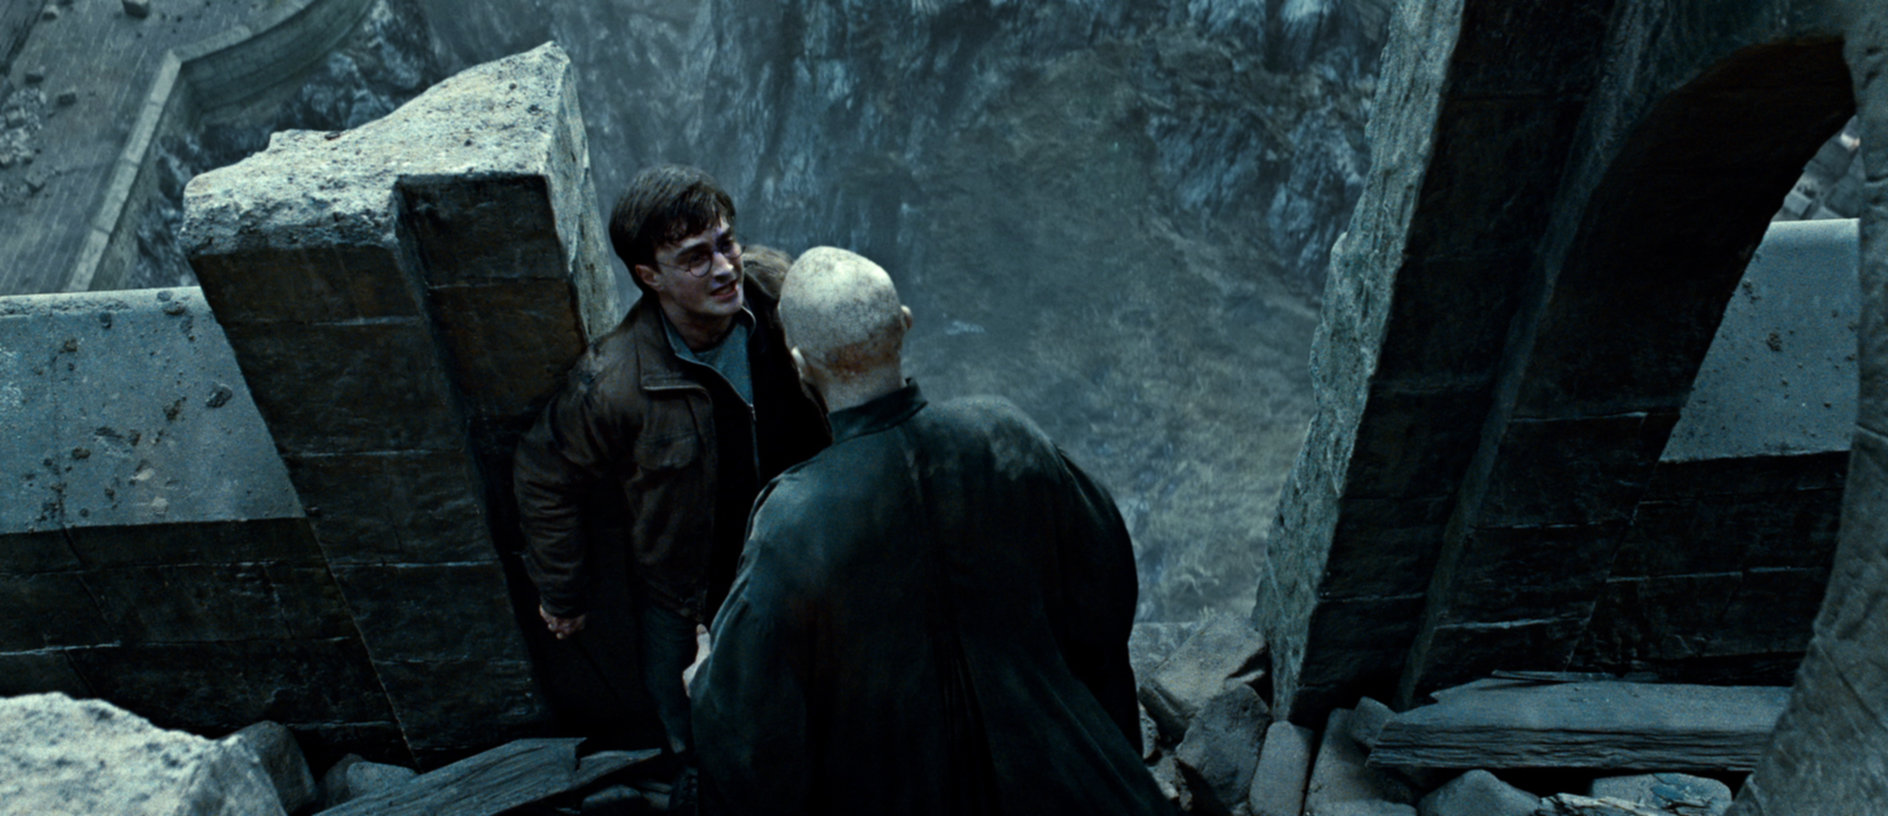 Voldemort and Harry at the edge of tallest tower in Hogwarts from the Deathly Hallows Part 2